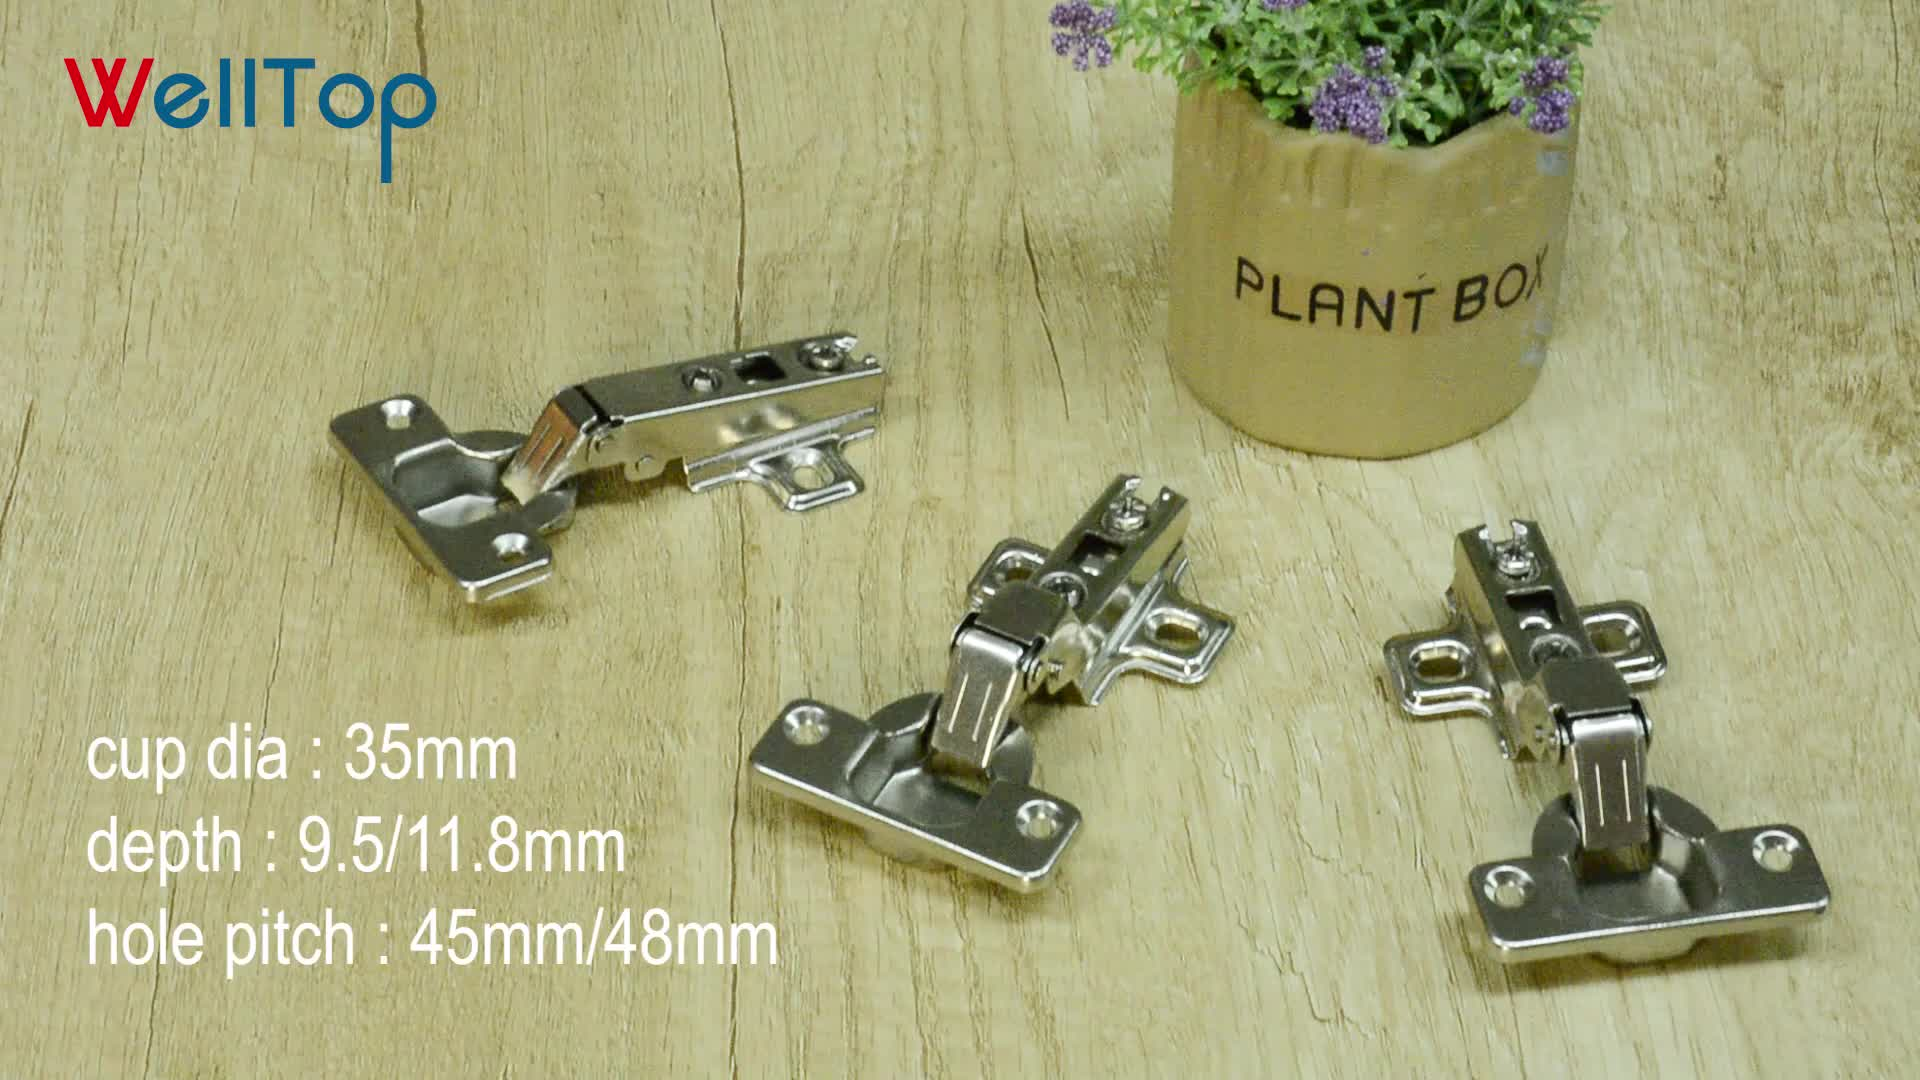 VT-16.002-52 cabinet slide on two way hinge with weight 52g inset kitchen hinges for cabinets